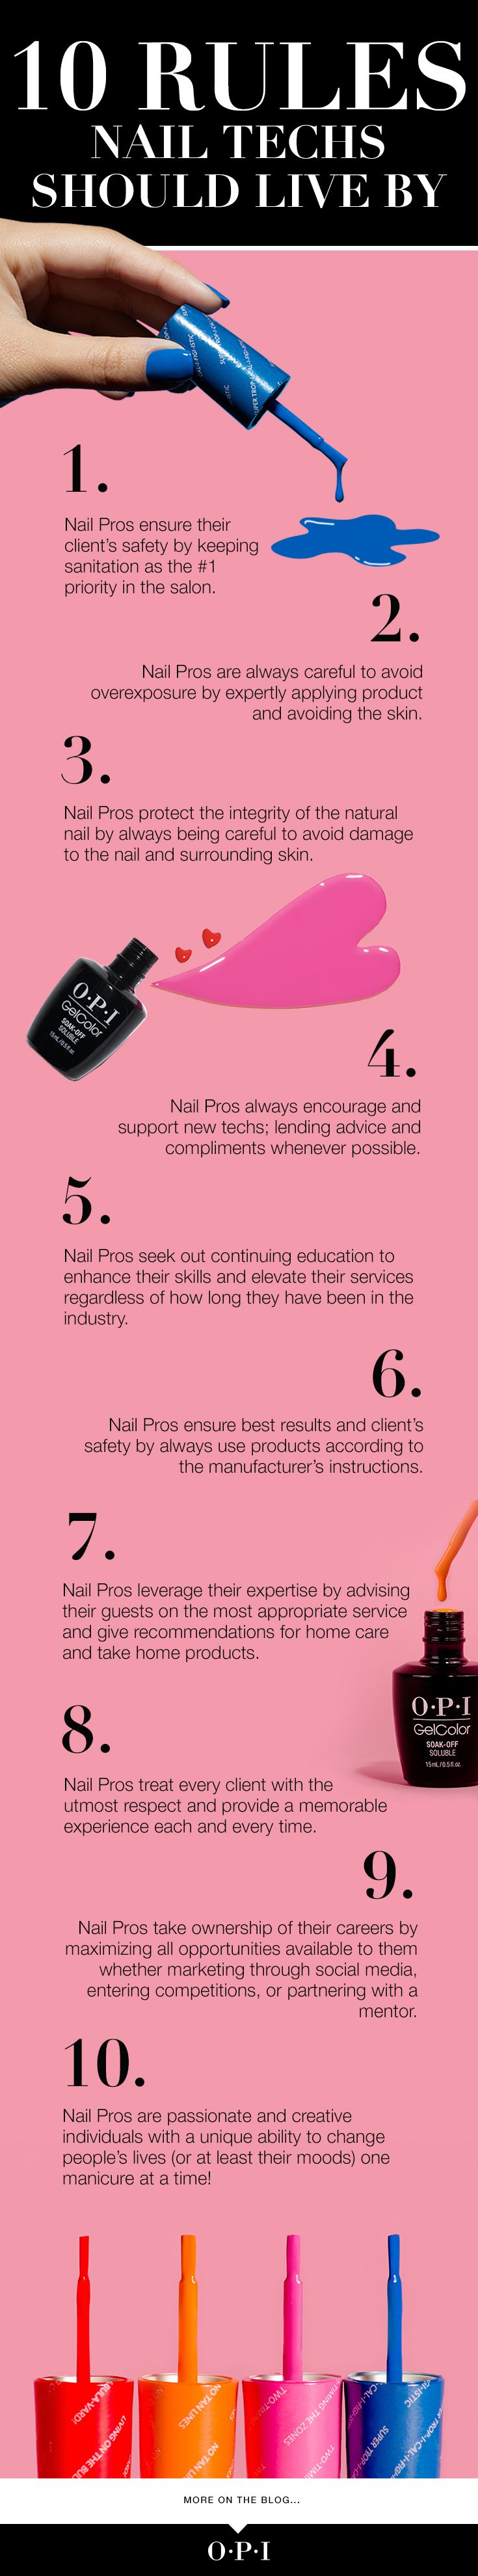 10 Rules for Nail Pros to Live By Beauty salon decor